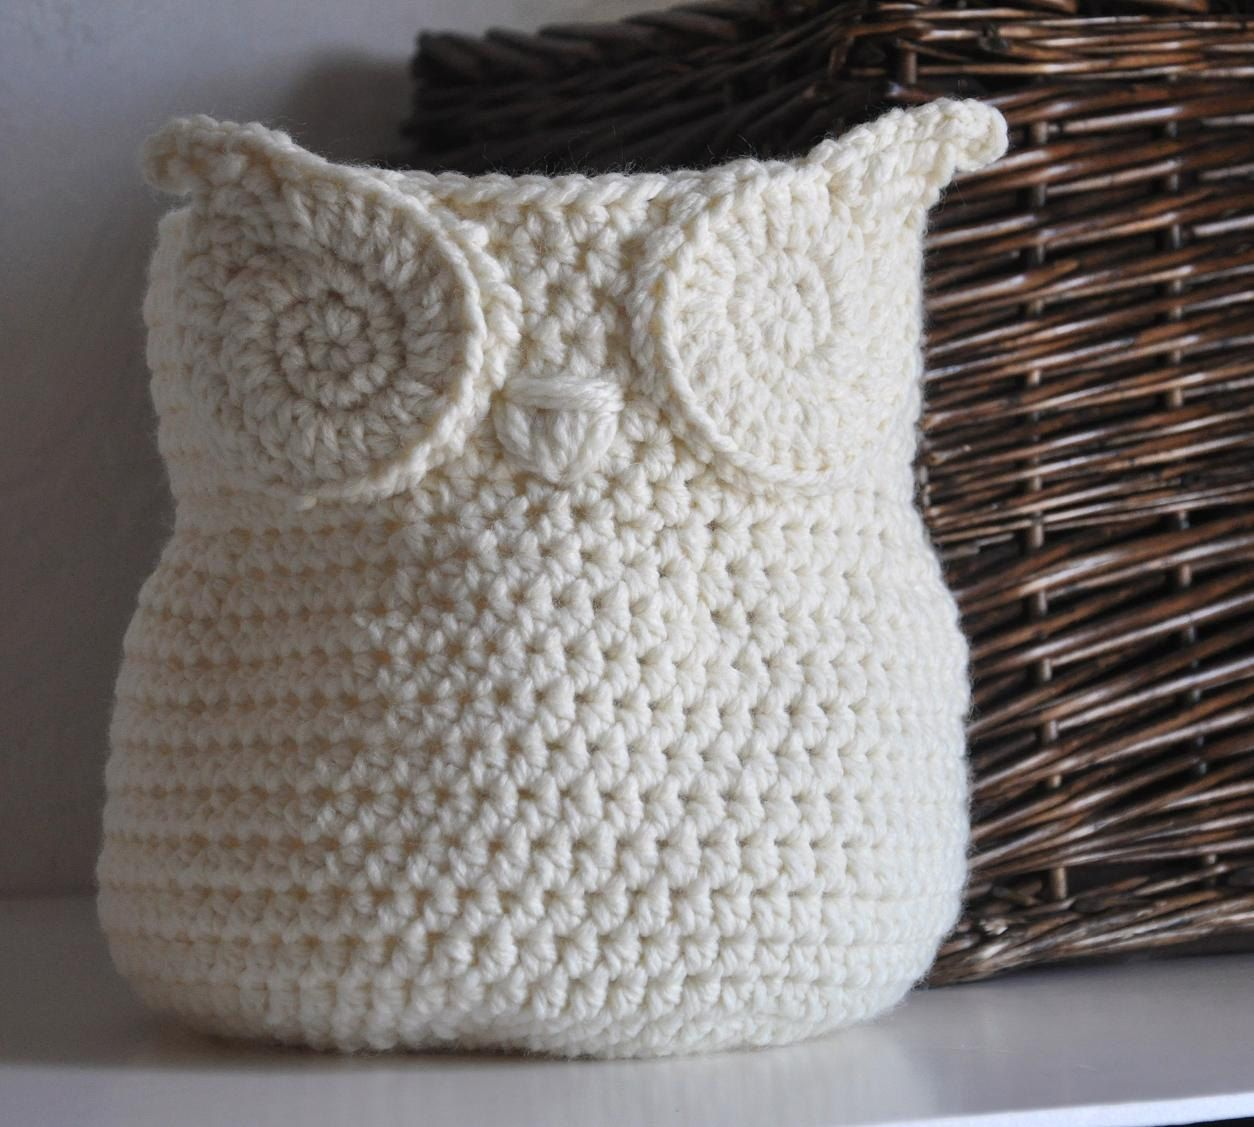 Owl basket crocheted bin yarn holder nursery by aandbdesignstudio owl basket crocheted bin yarn holder nursery by aandbdesignstudio 4000 bankloansurffo Images